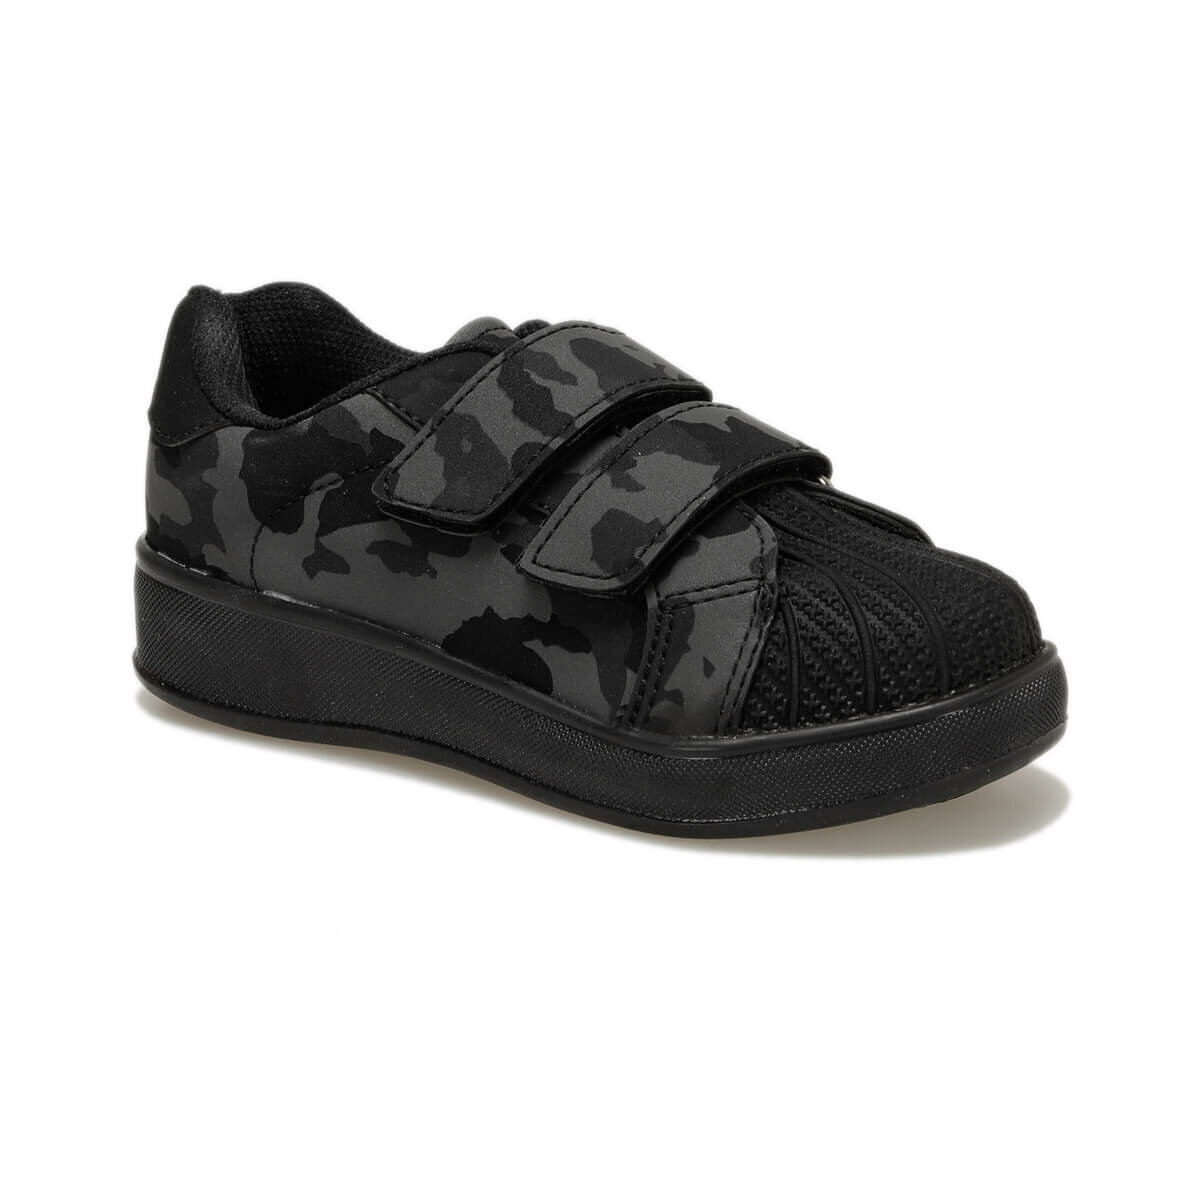 FLO 92.510805.P Black Male Child Shoes Polaris